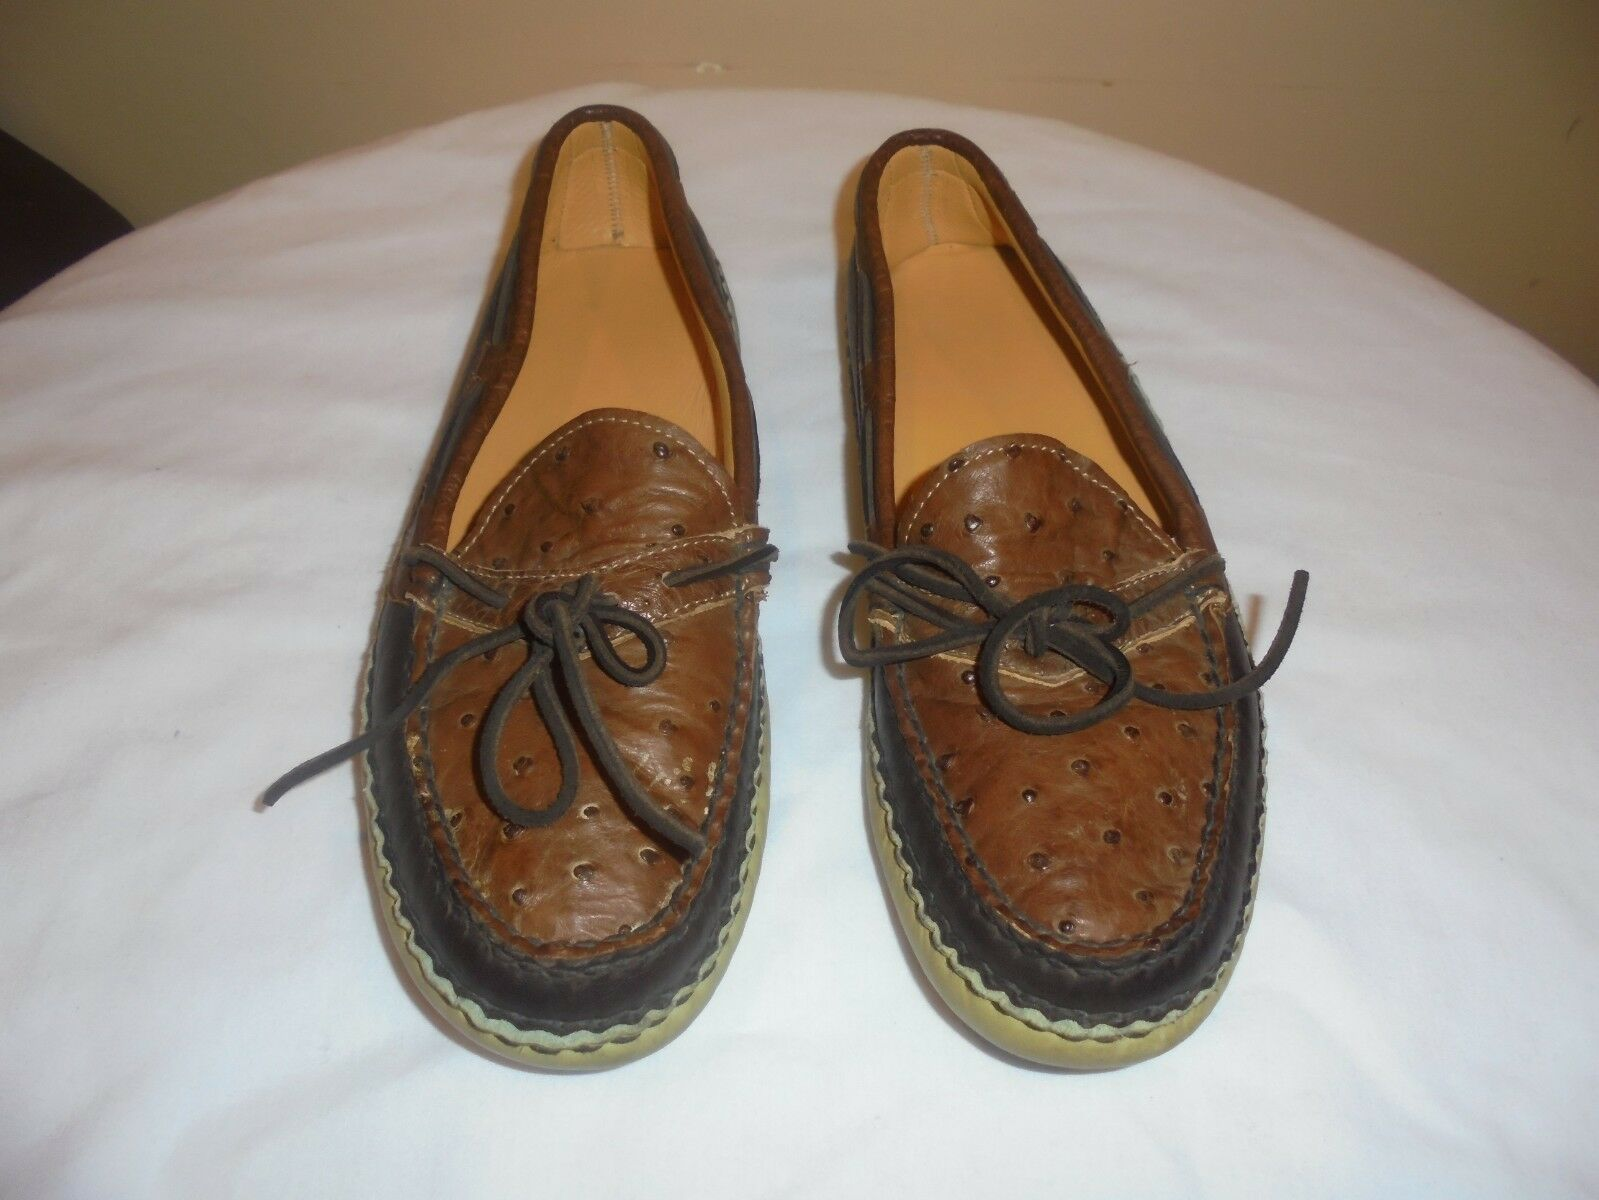 EUC Willy Mocs Dempsey Creek T130 Ostrich Moccasins Mens Dimensione 9 D